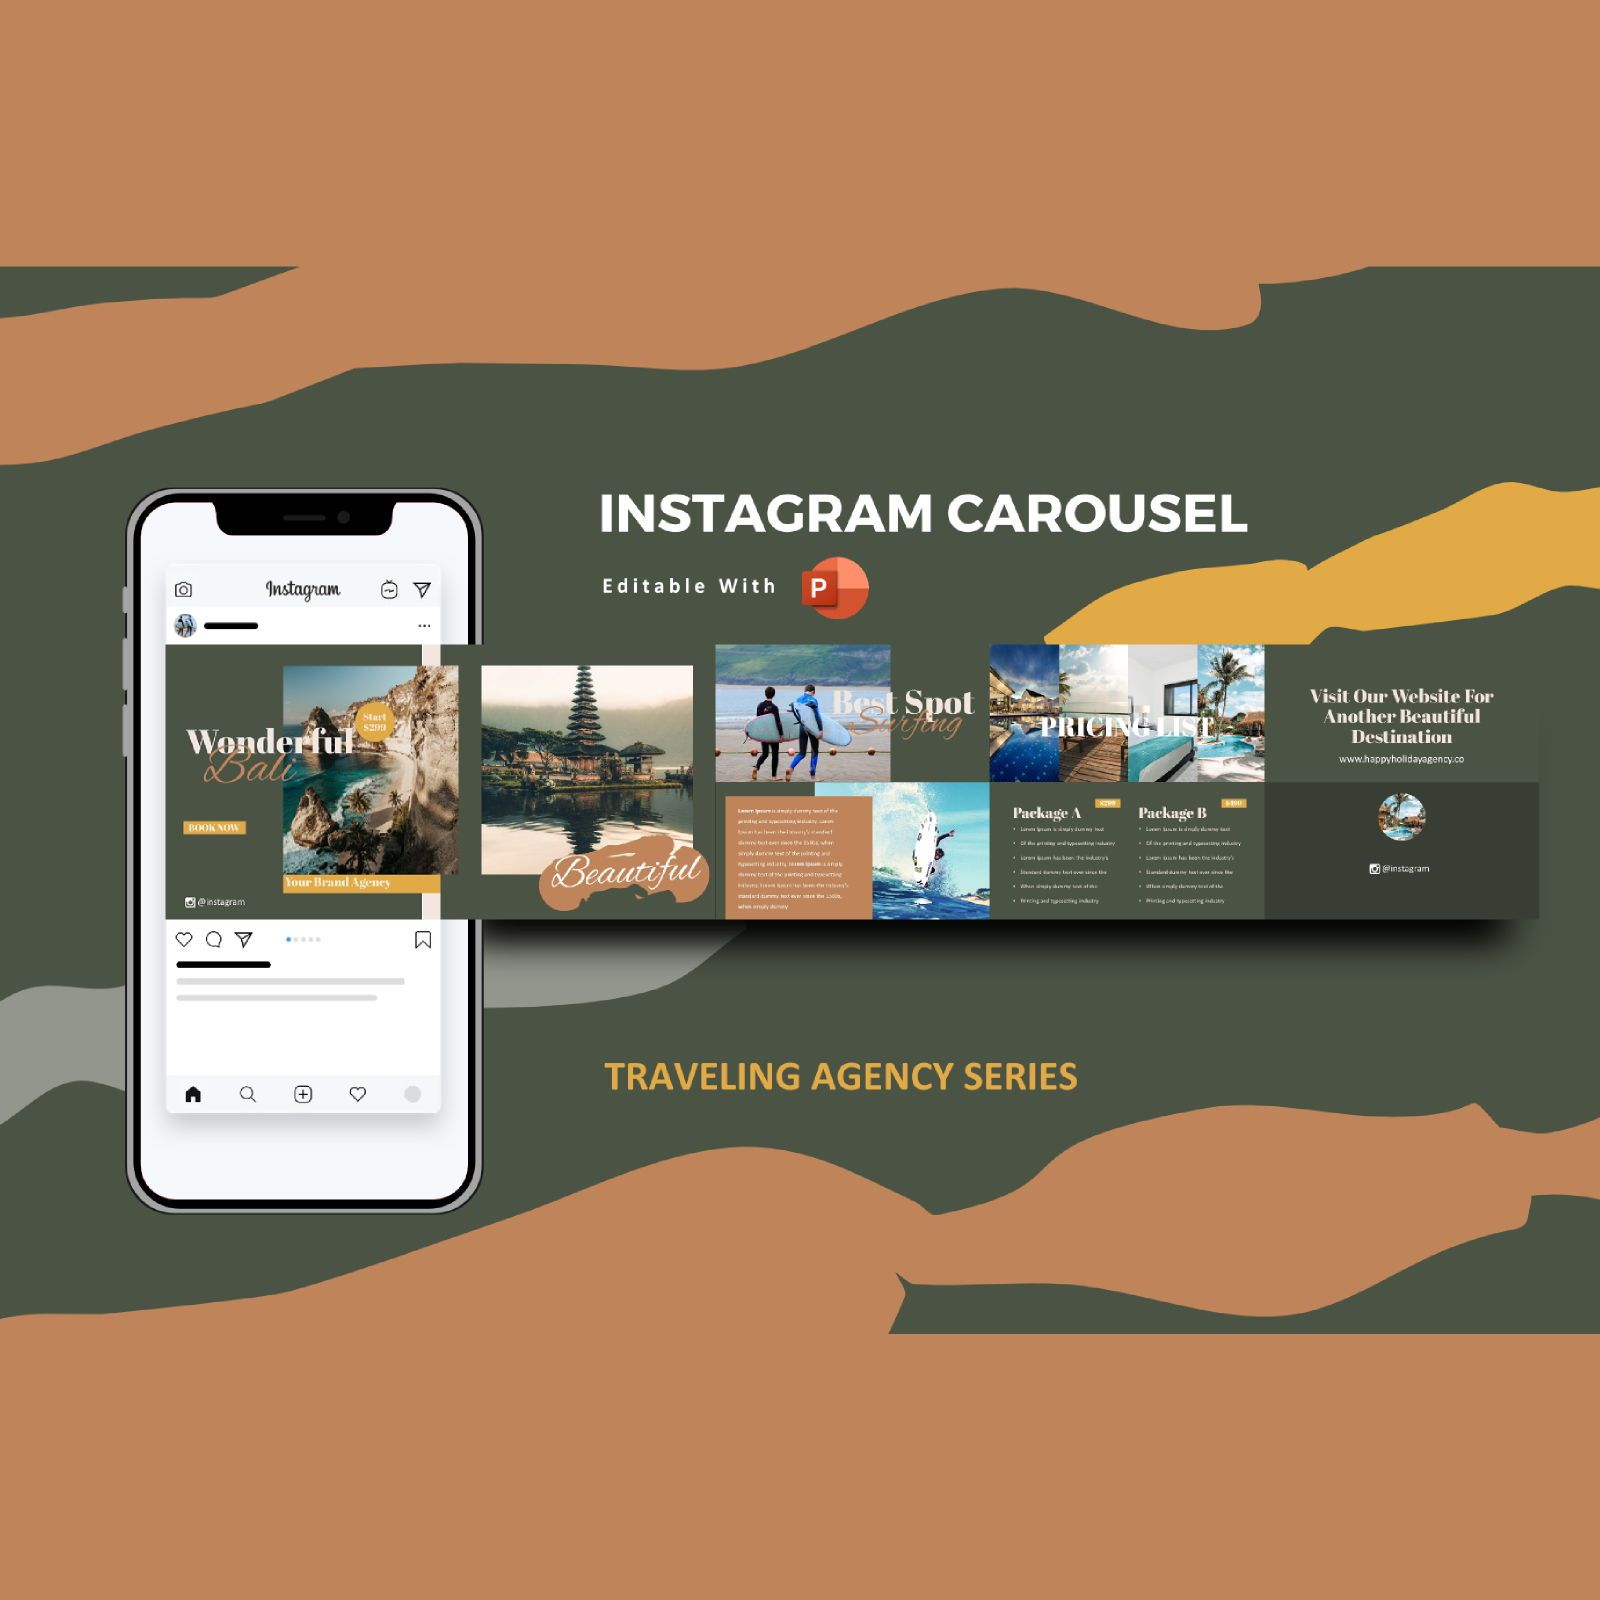 Traveling agency tour instagram carousel powerpoint template, 07432, Business Models — PoweredTemplate.com